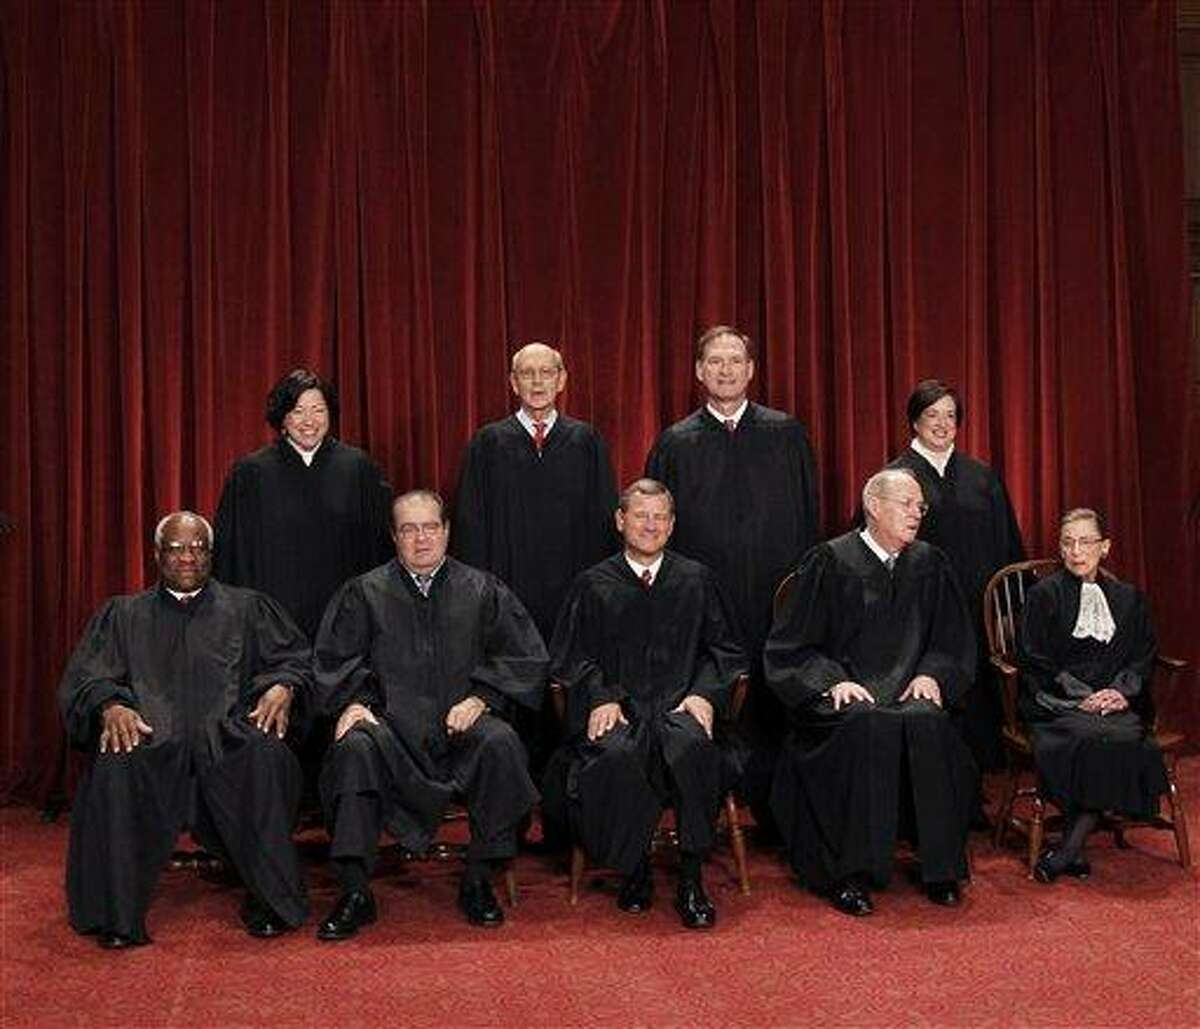 The Supreme Court is embarking on a new term beginning Monday that could be as consequential as the last one with the prospect for major rulings about affirmative action, gay marriage and voting rights. Seated from left to right are: Associate Justice Clarence Thomas, Associate Justice Antonin Scalia, Chief Justice John G. Roberts, Associate Justice Anthony M. Kennedy, Associate Justice Ruth Bader Ginsburg. Standing, from left are: Associate Justice Sonia Sotomayor, Associate Justice Stephen Breyer, Associate Justice Samuel Alito Jr., and Associate Justice Elena Kagan. Associated Press file photo